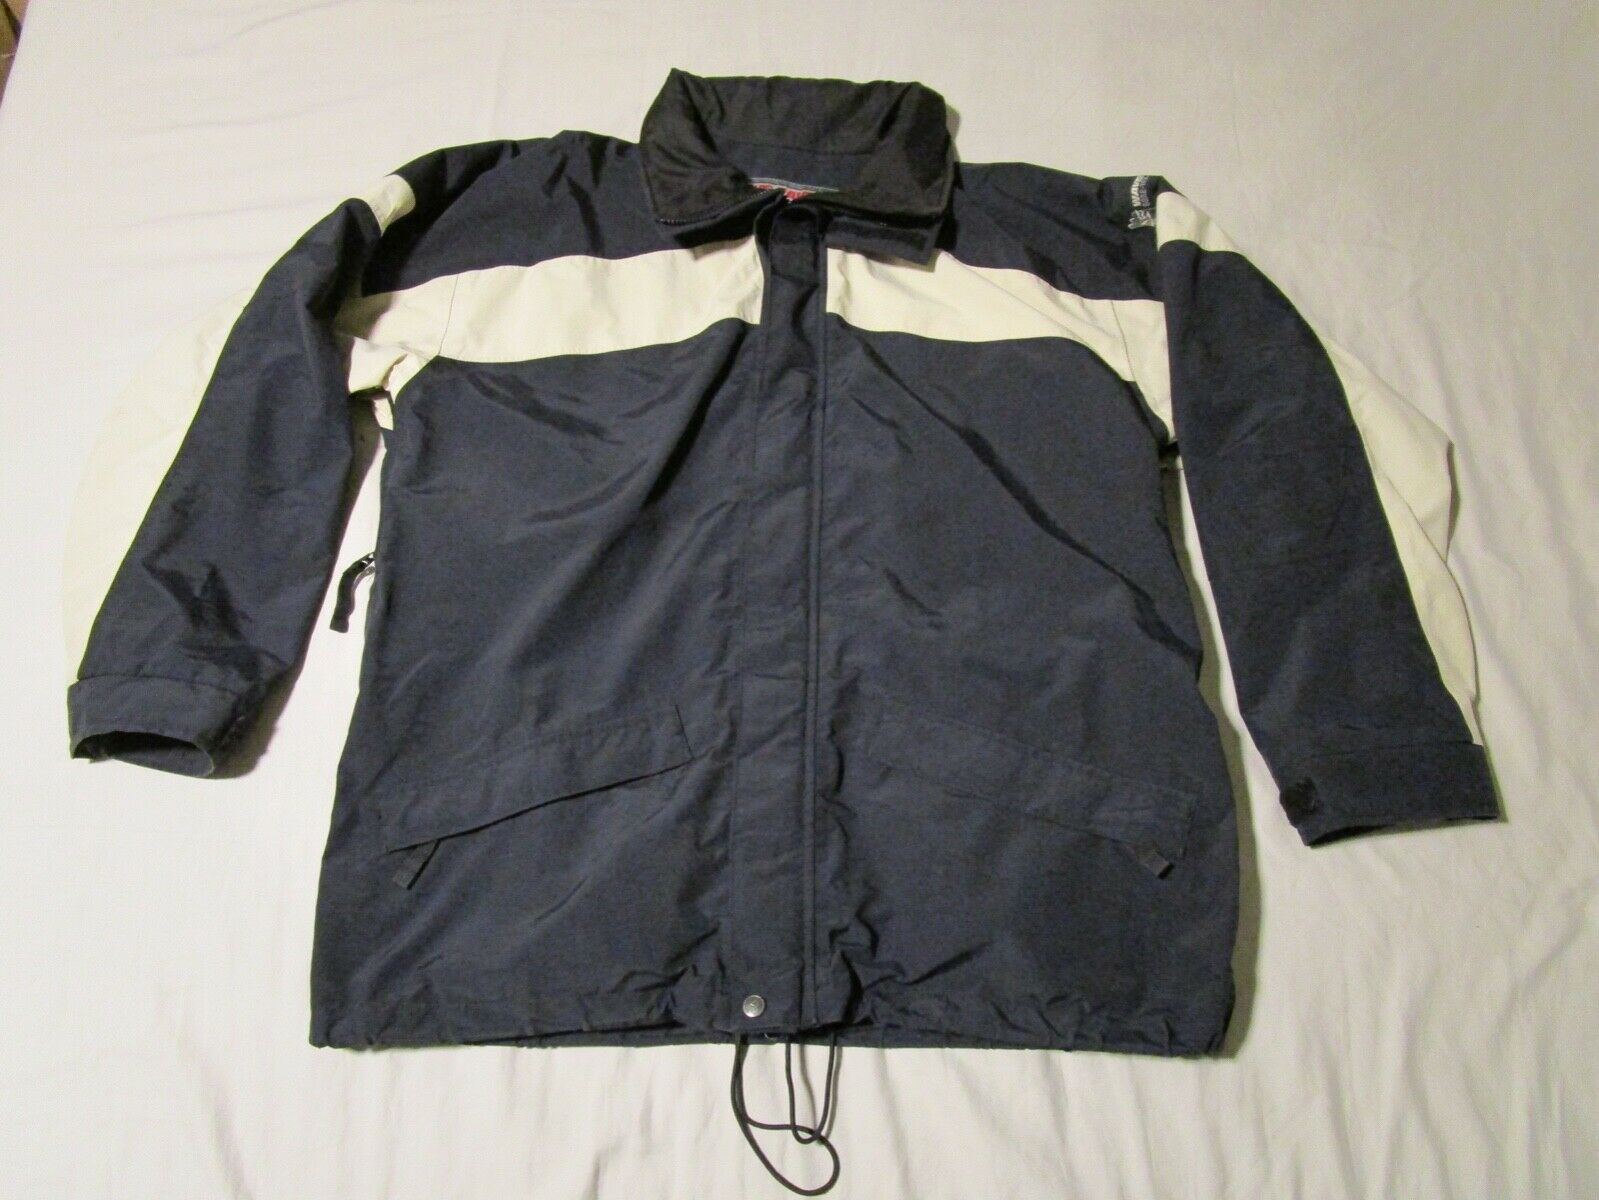 NWT MEN/'S SPYDER LEADER GORE-TEX SKI SNOWBOARDING JACKET WINTER JACKET SIZE S